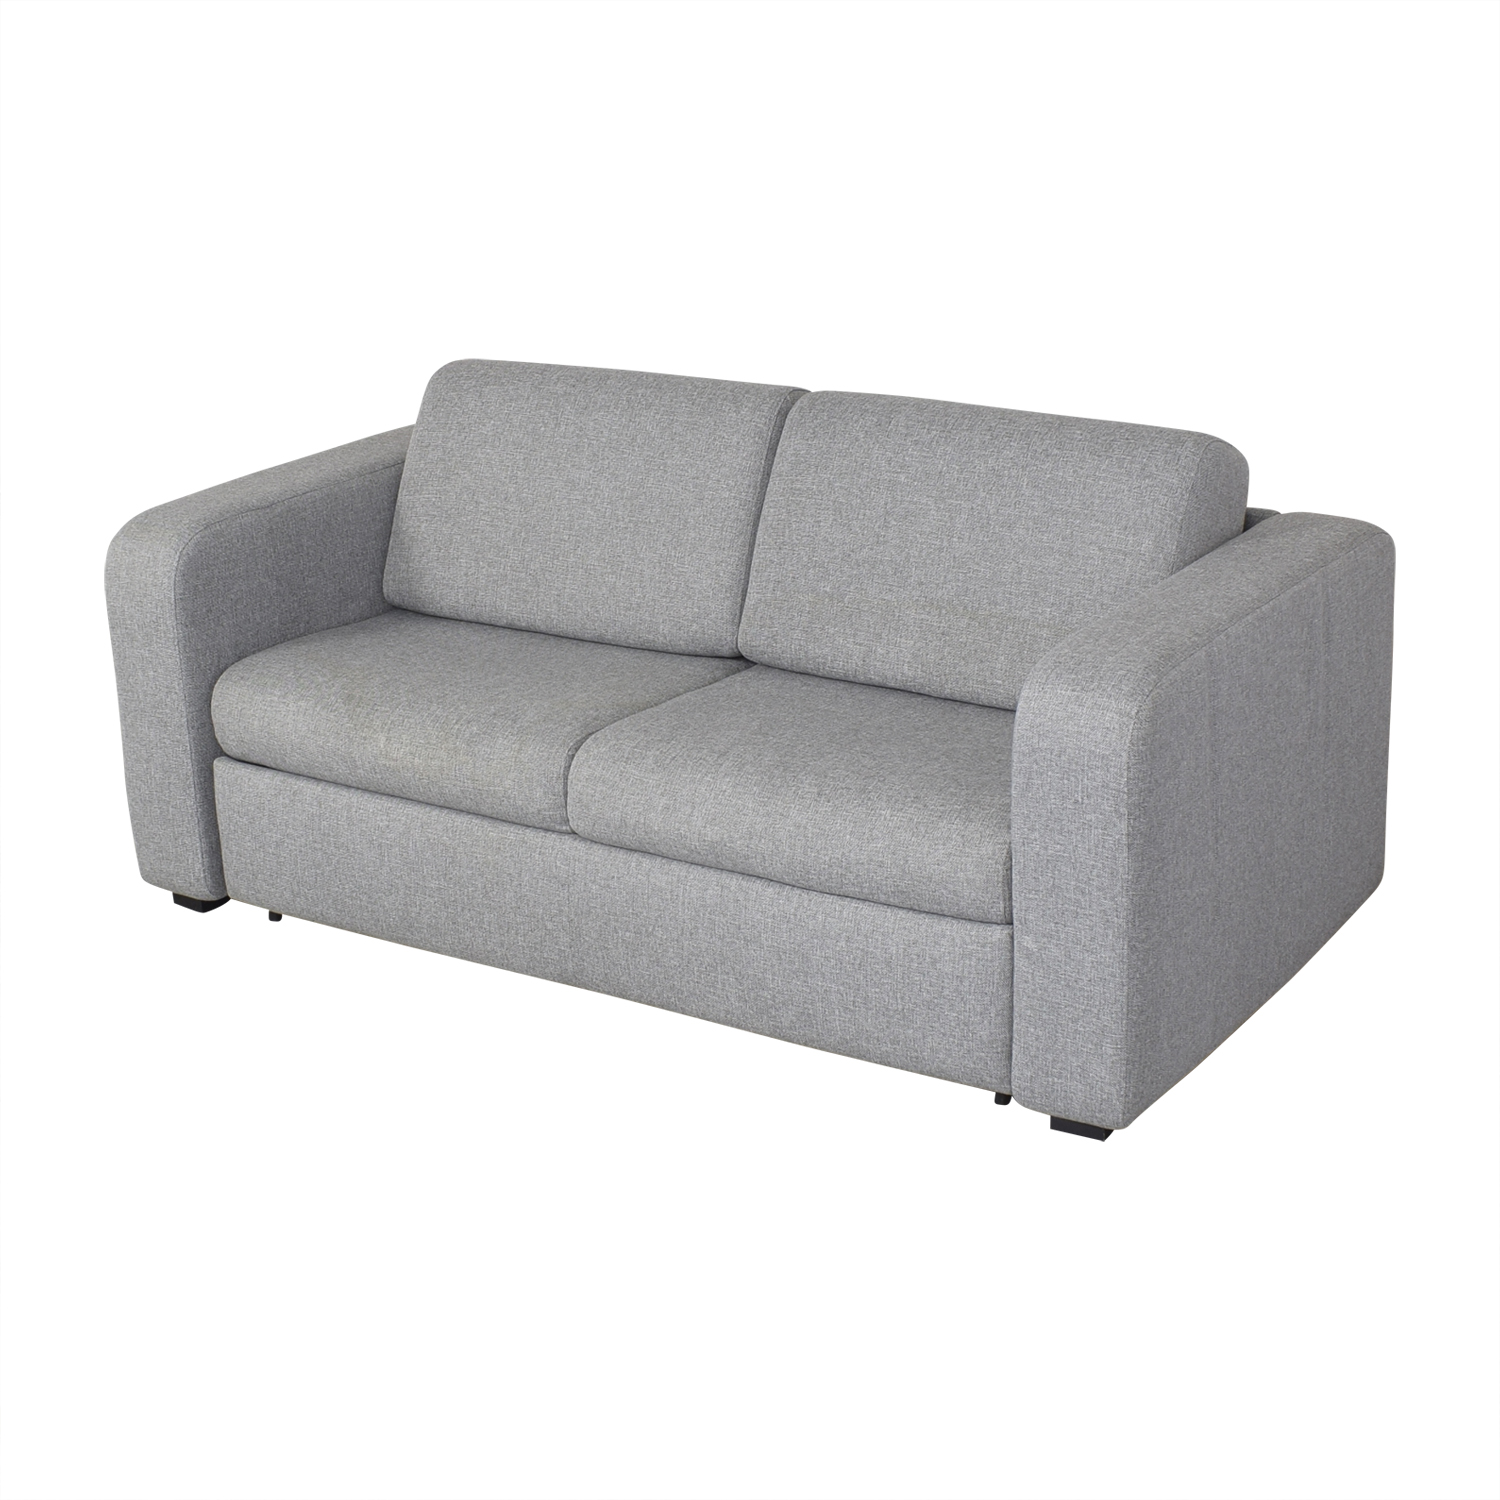 Habitat Habitat Sleeper Sofa discount